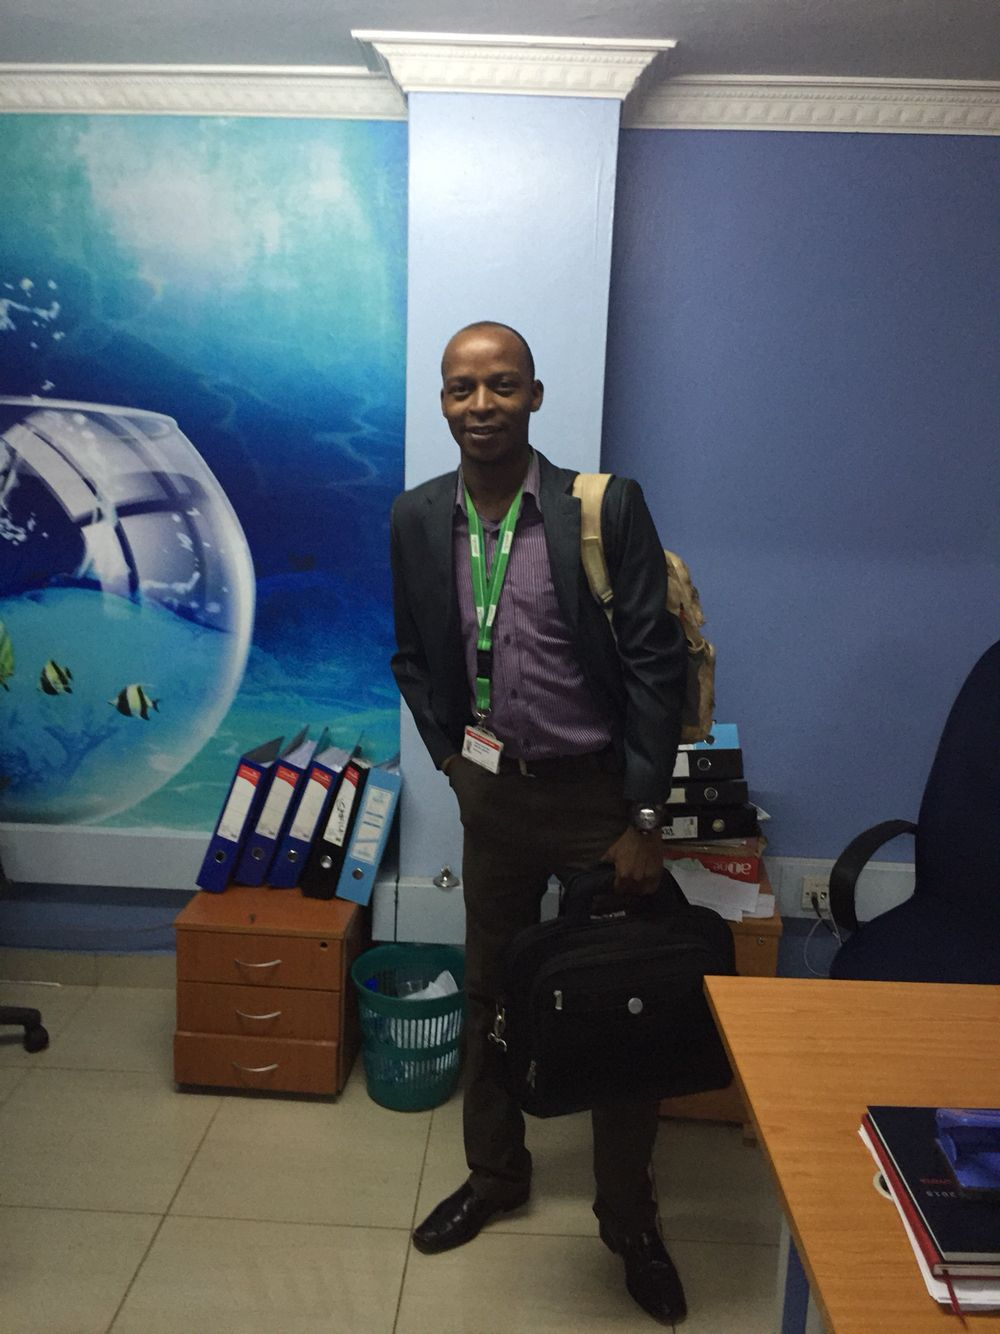 A pose moment after flipping oracle 12g & looking forward for an educative LTE 4G training